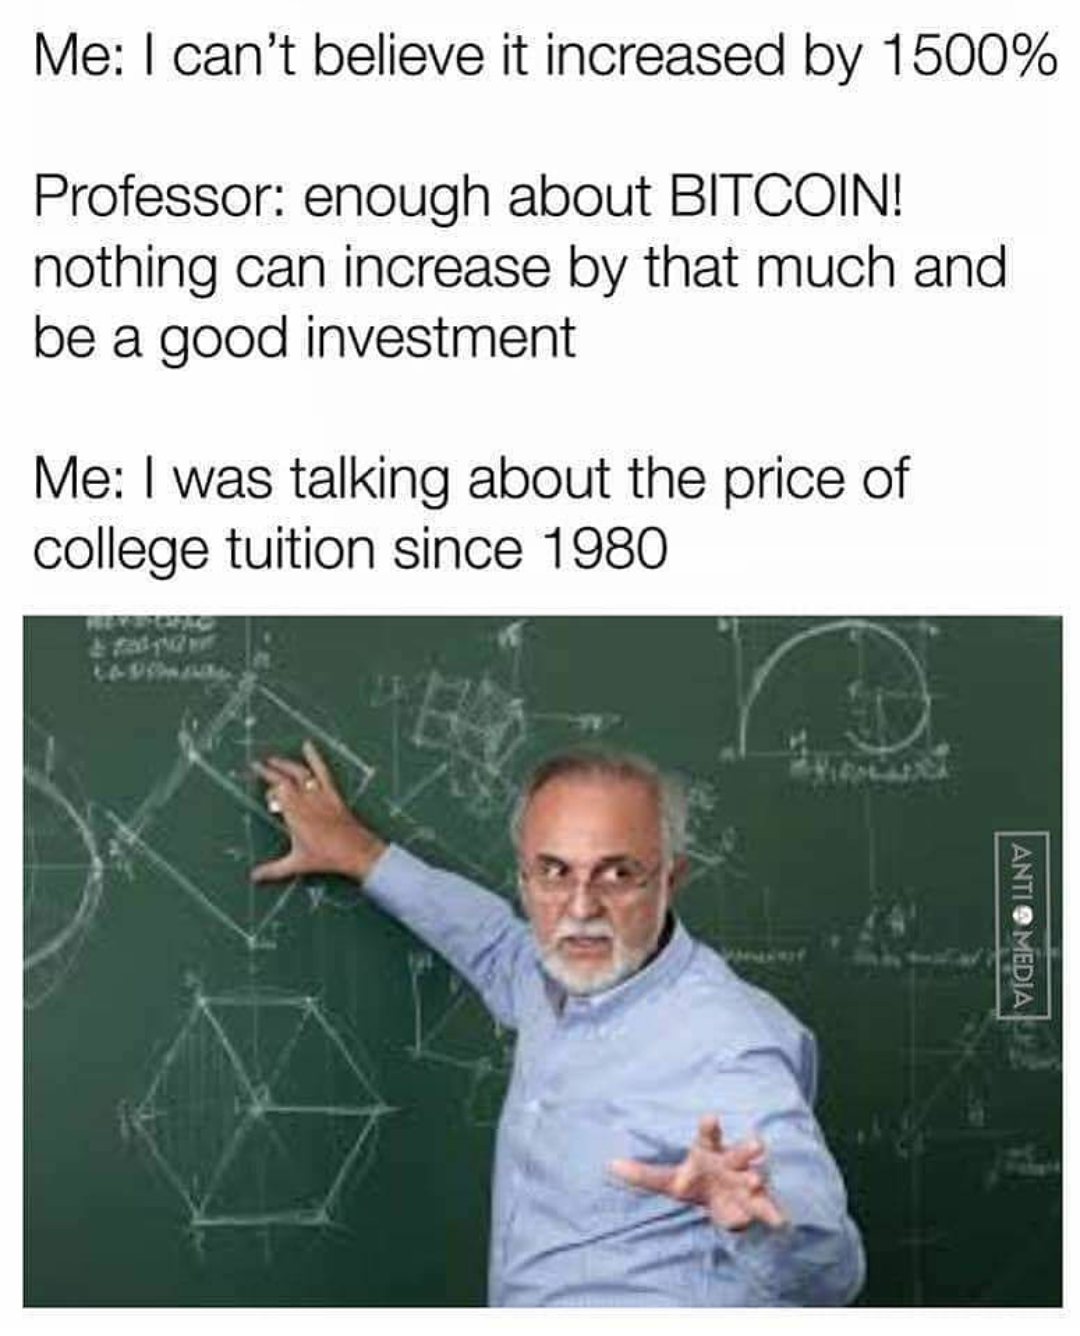 Me: I can't believe it increased by 1500% Professor: enough about BITCOIN!  nothing can increase by that much and be a good investment Me: I was  talking about the price of college